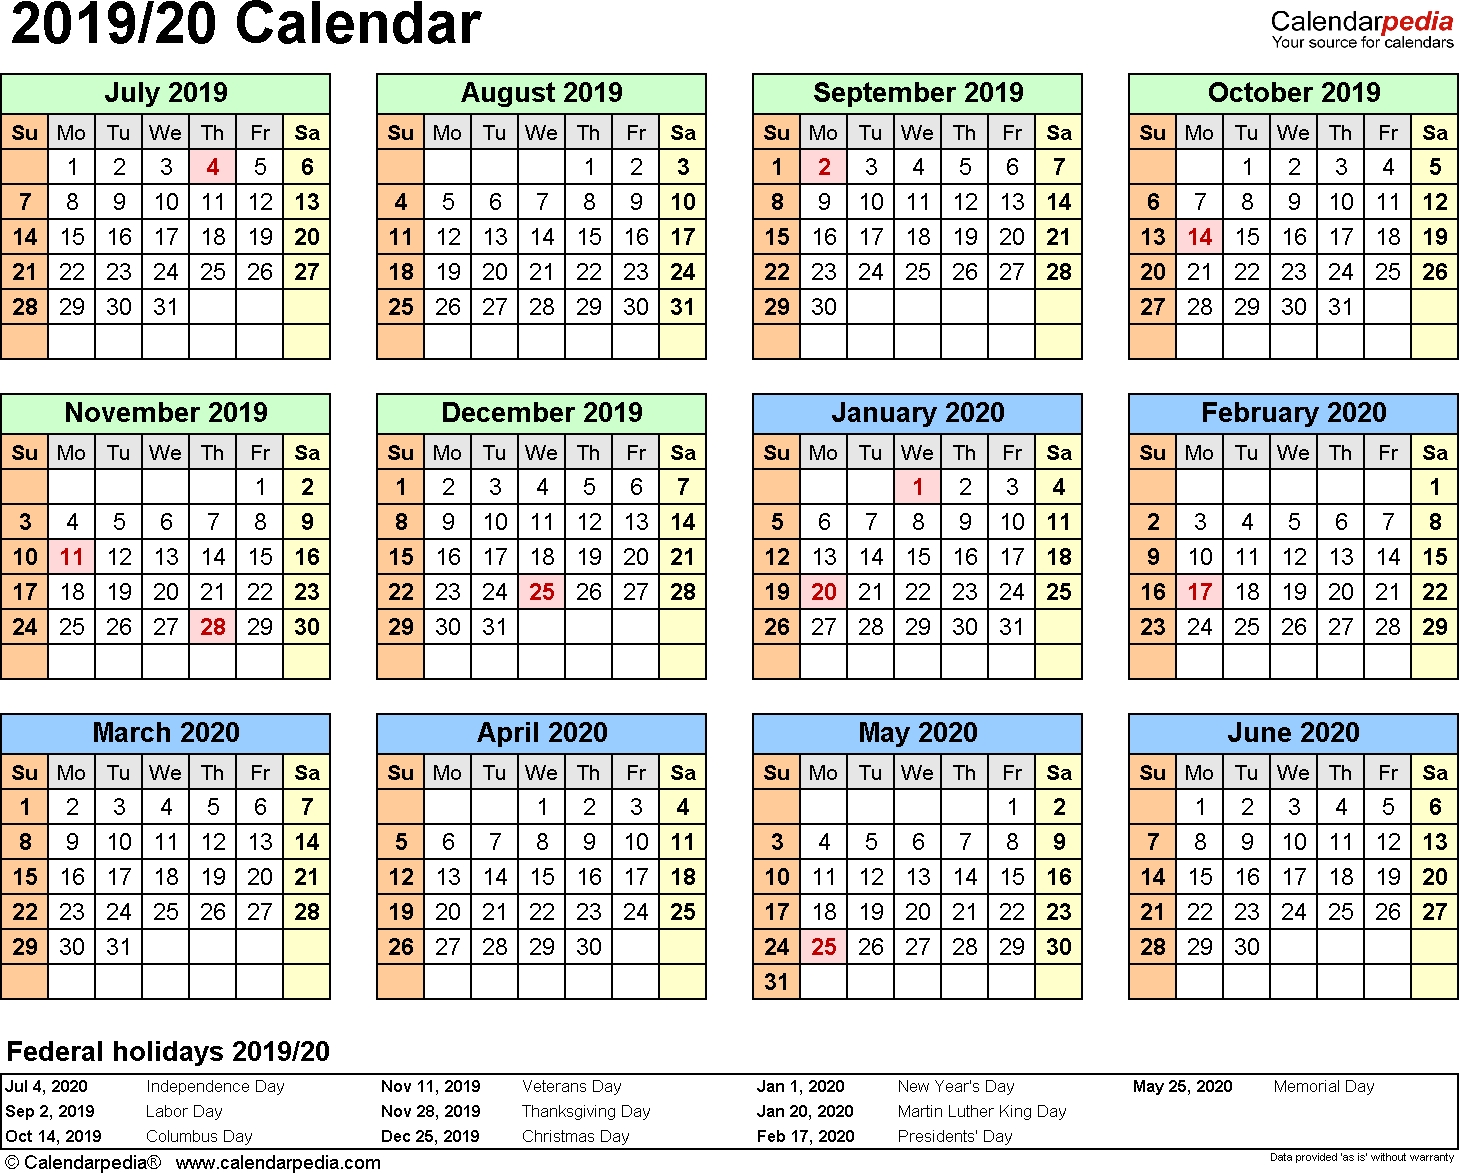 Split Year Calendar 2019/20 (July To June) - Word Templates with regard to One Page Yearly Calendar 2019-2020